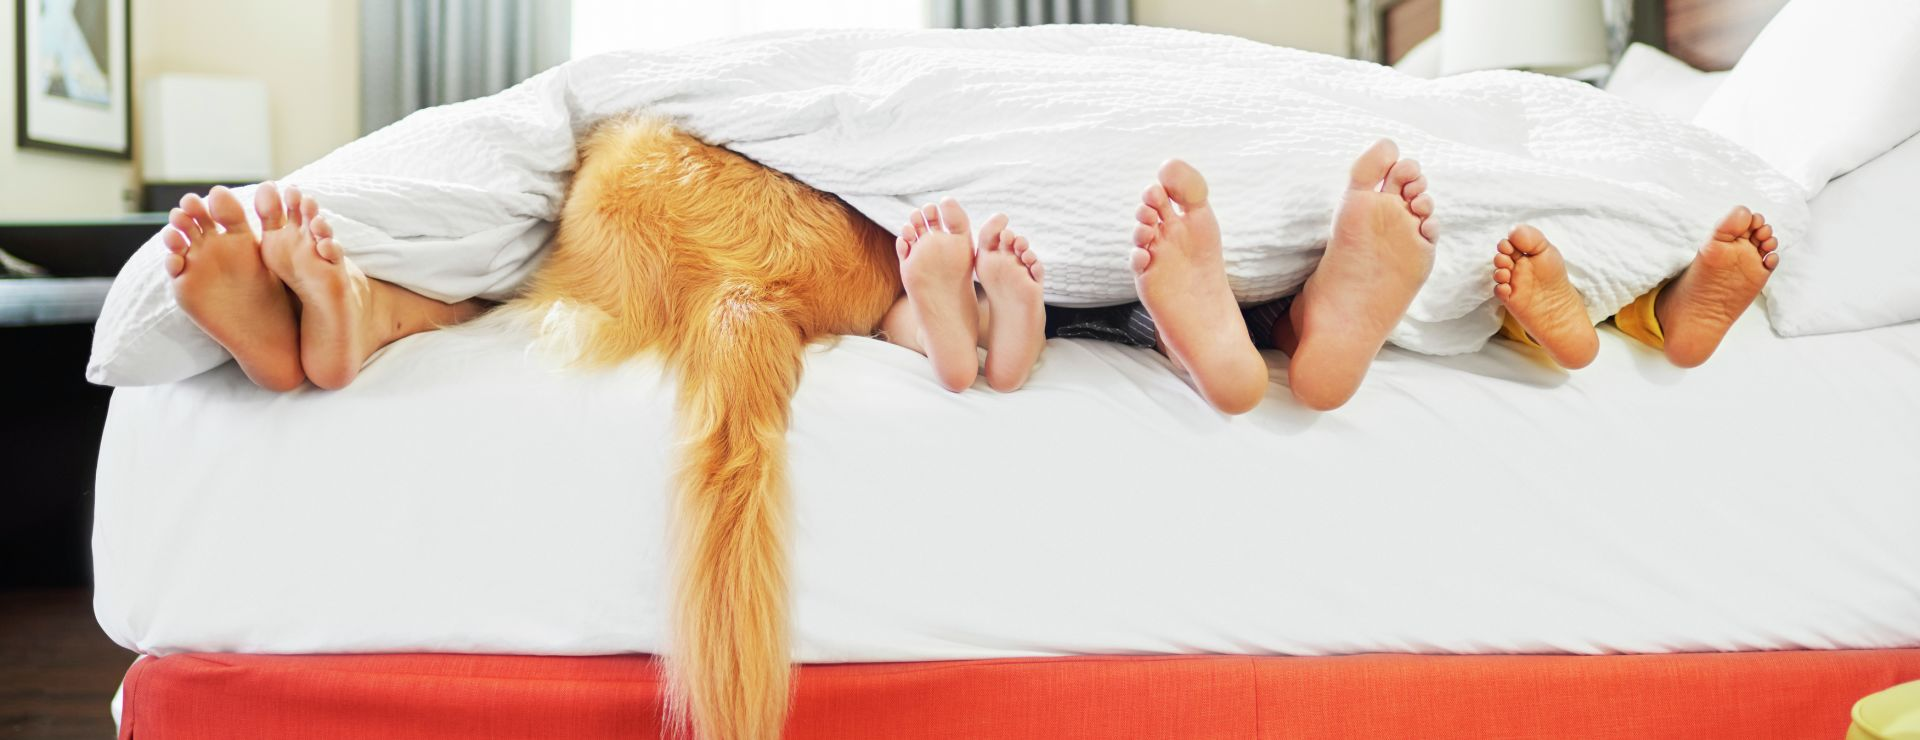 Family with feet hanging out of bed with dog